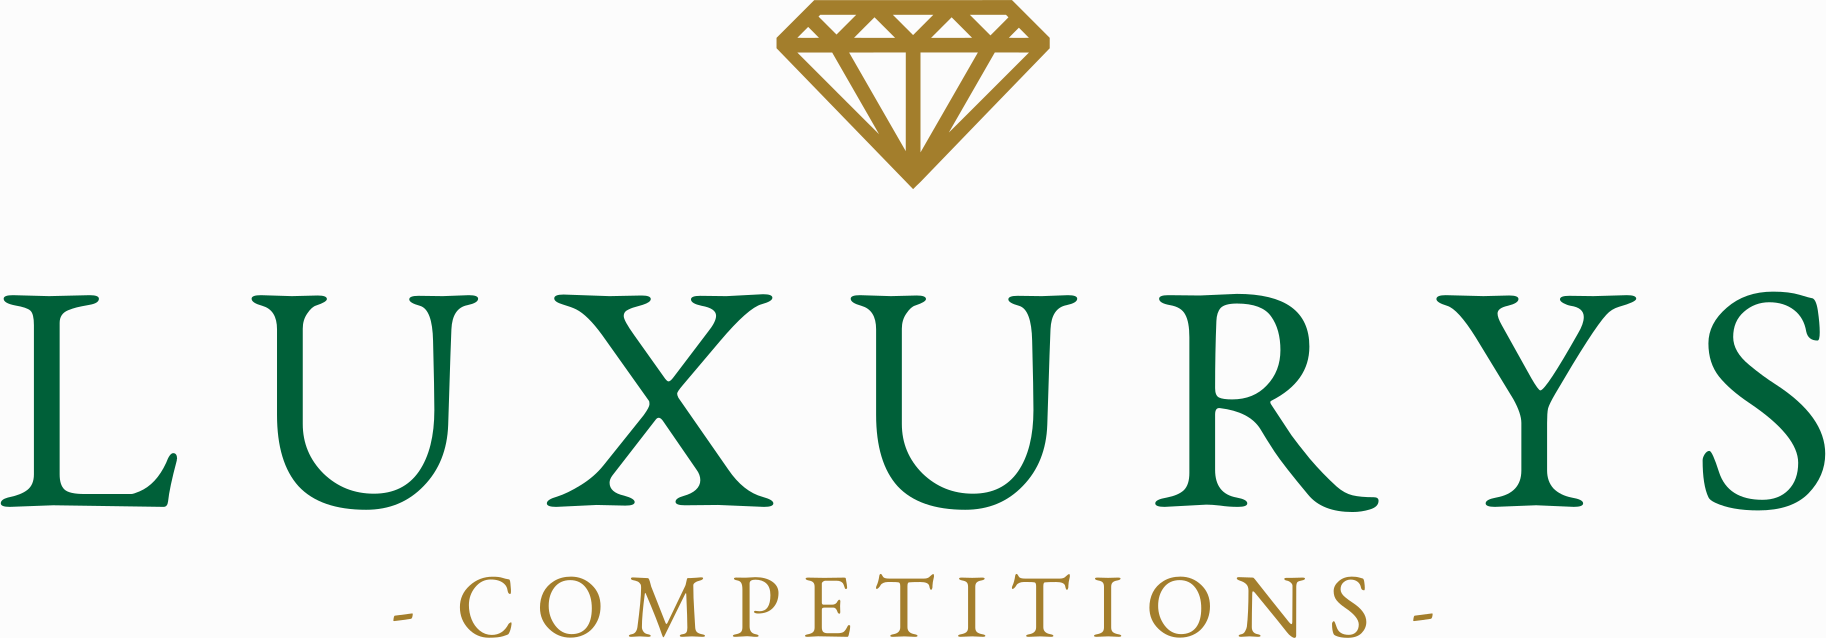 Luxurys Competitions Logo